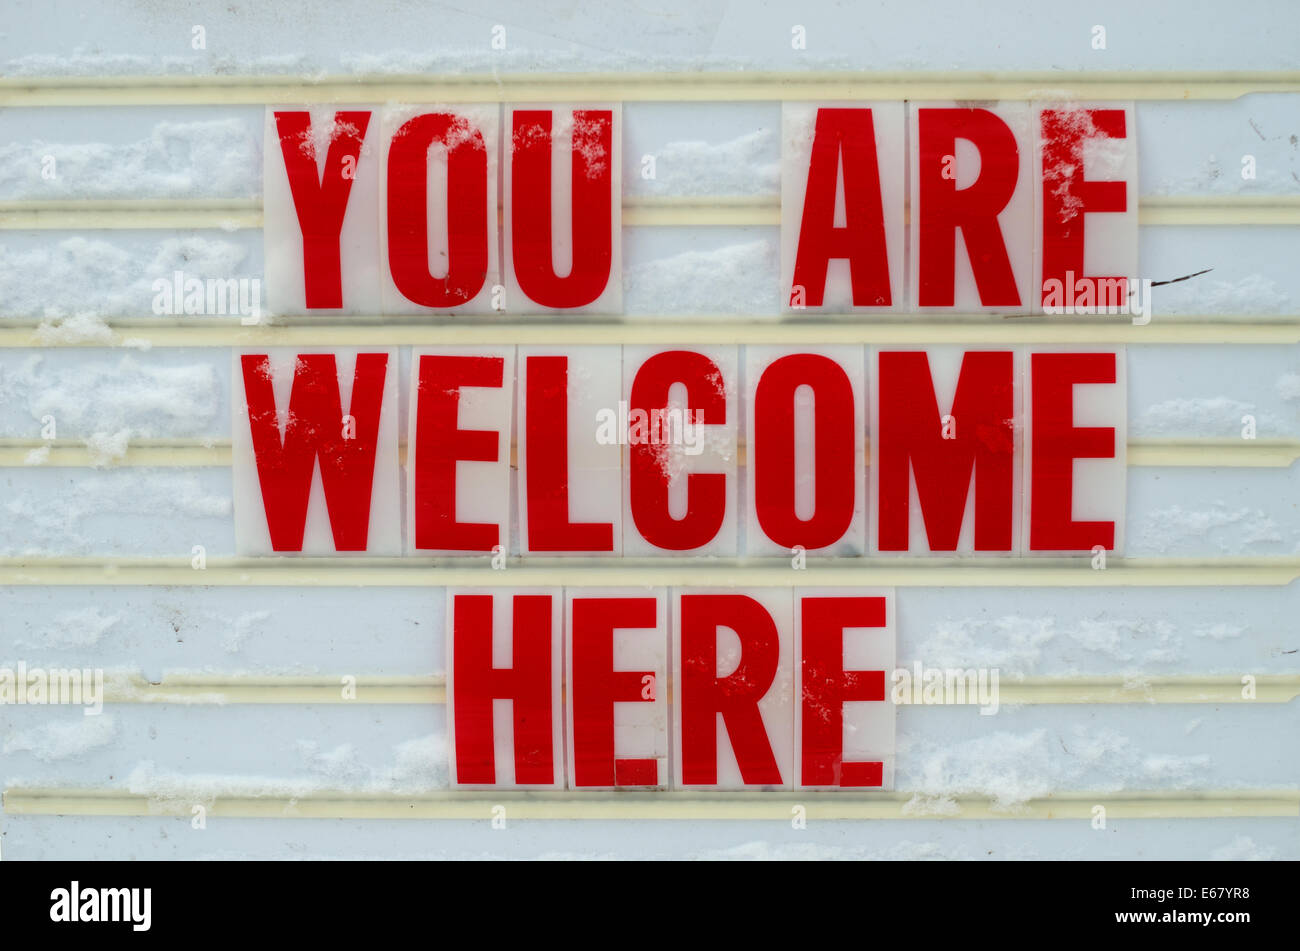 outdoor reader board with flexible plastic marquee sign letters saying you are welcome here